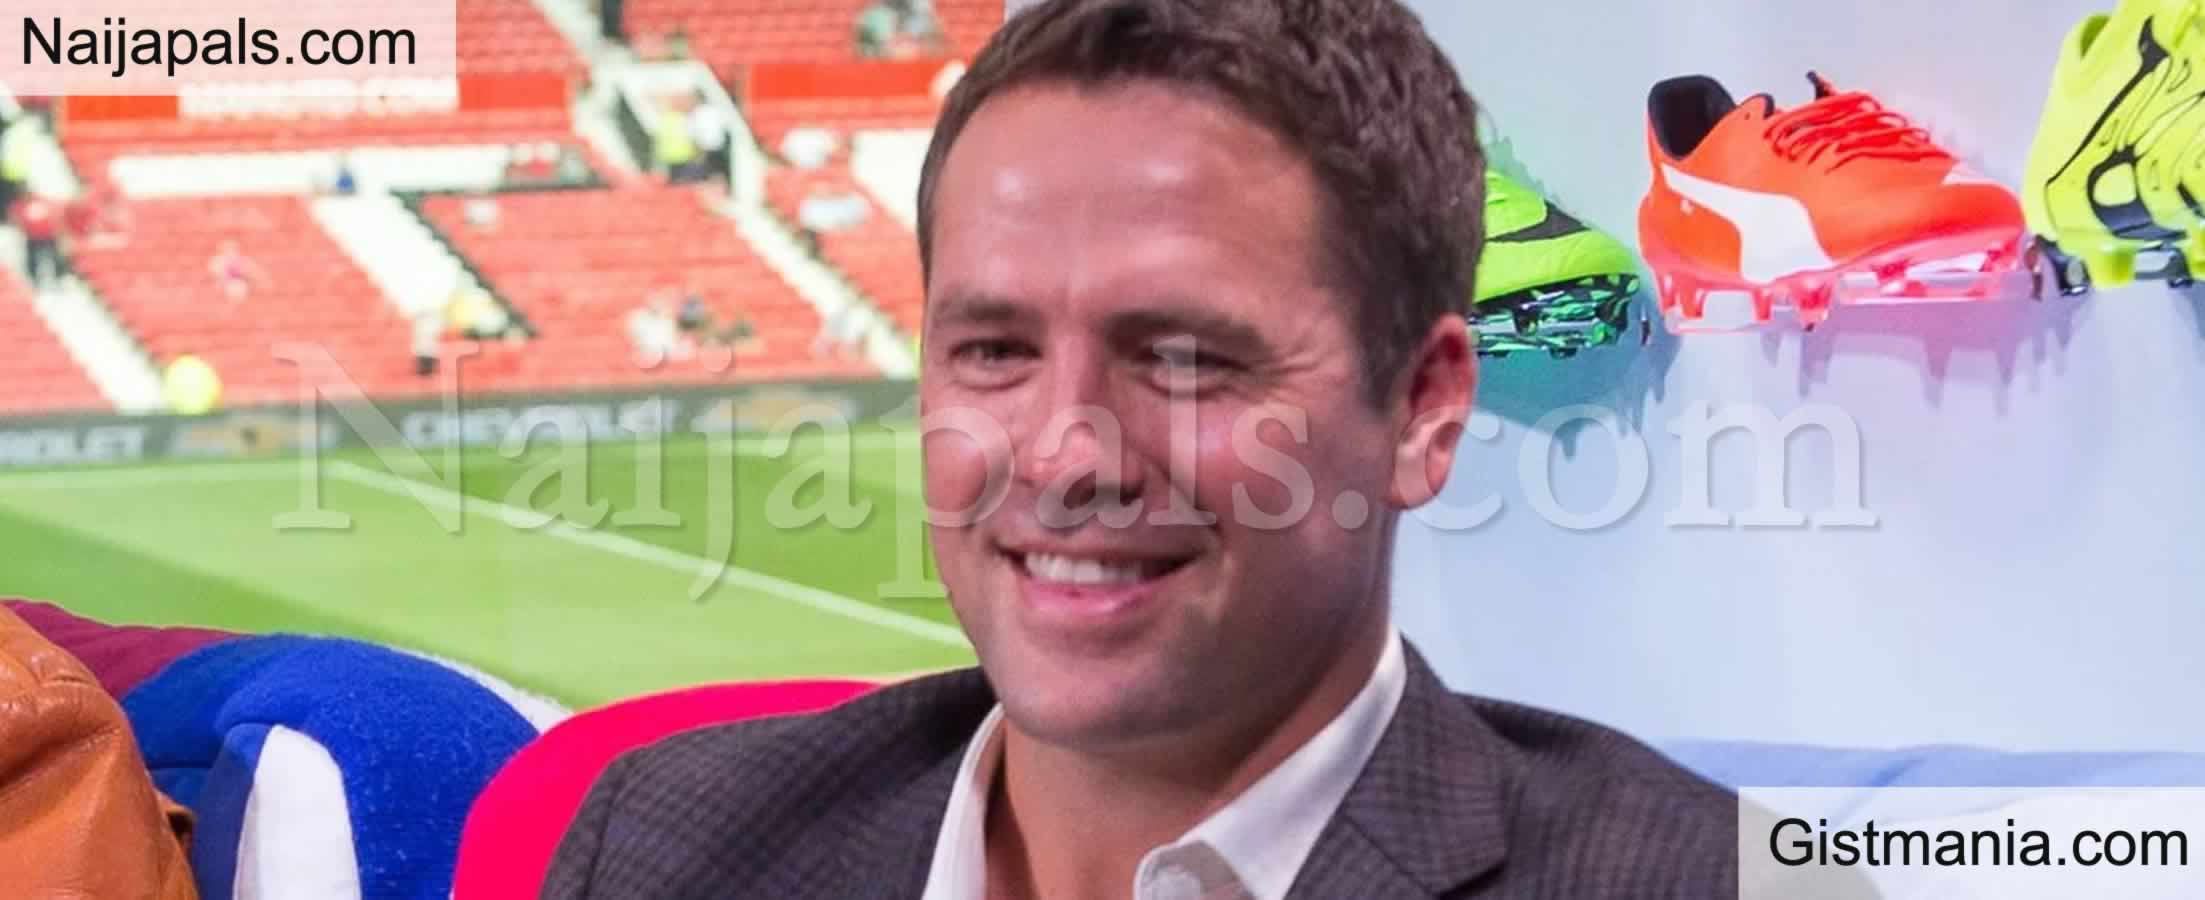 <img alt='.' class='lazyload' data-src='https://img.gistmania.com/emot/news.gif' /> <b>Former England Striker, Michael Owen Begged Former Big Brother Housemate For Nud3 Pictures</b>